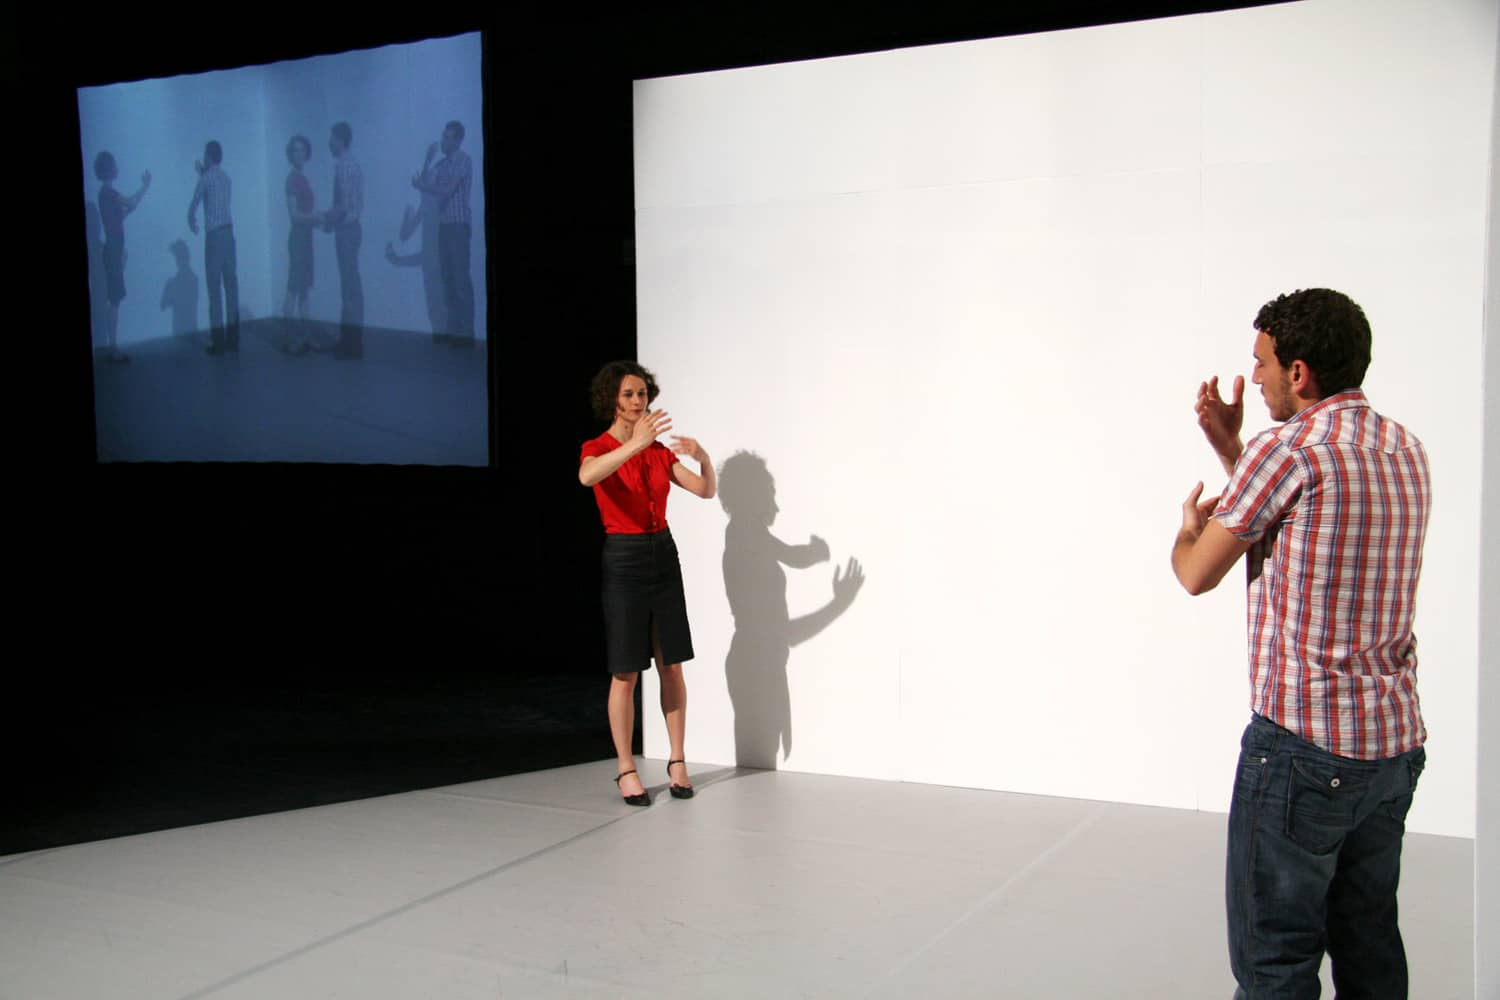 Still Life With Man and Woman by Andrea Bozic in collaboration with Julia Willms